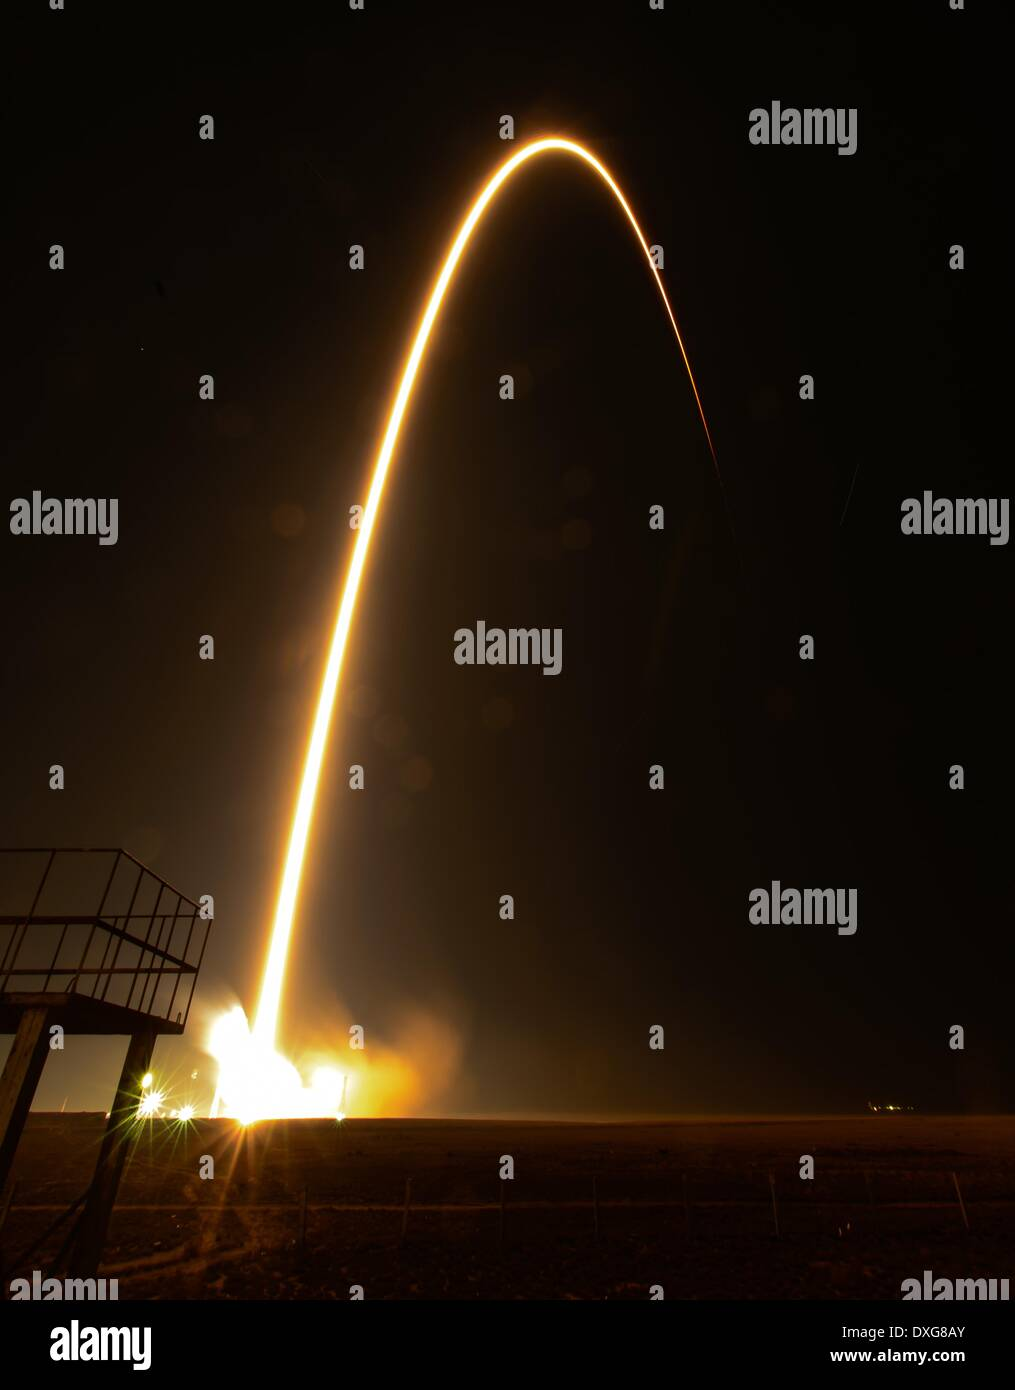 Long exposure showing the Soyuz TMA-12M rocket launches from Baikonur Cosmodrome carrying Expedition 39 Soyuz Commander - Stock Image